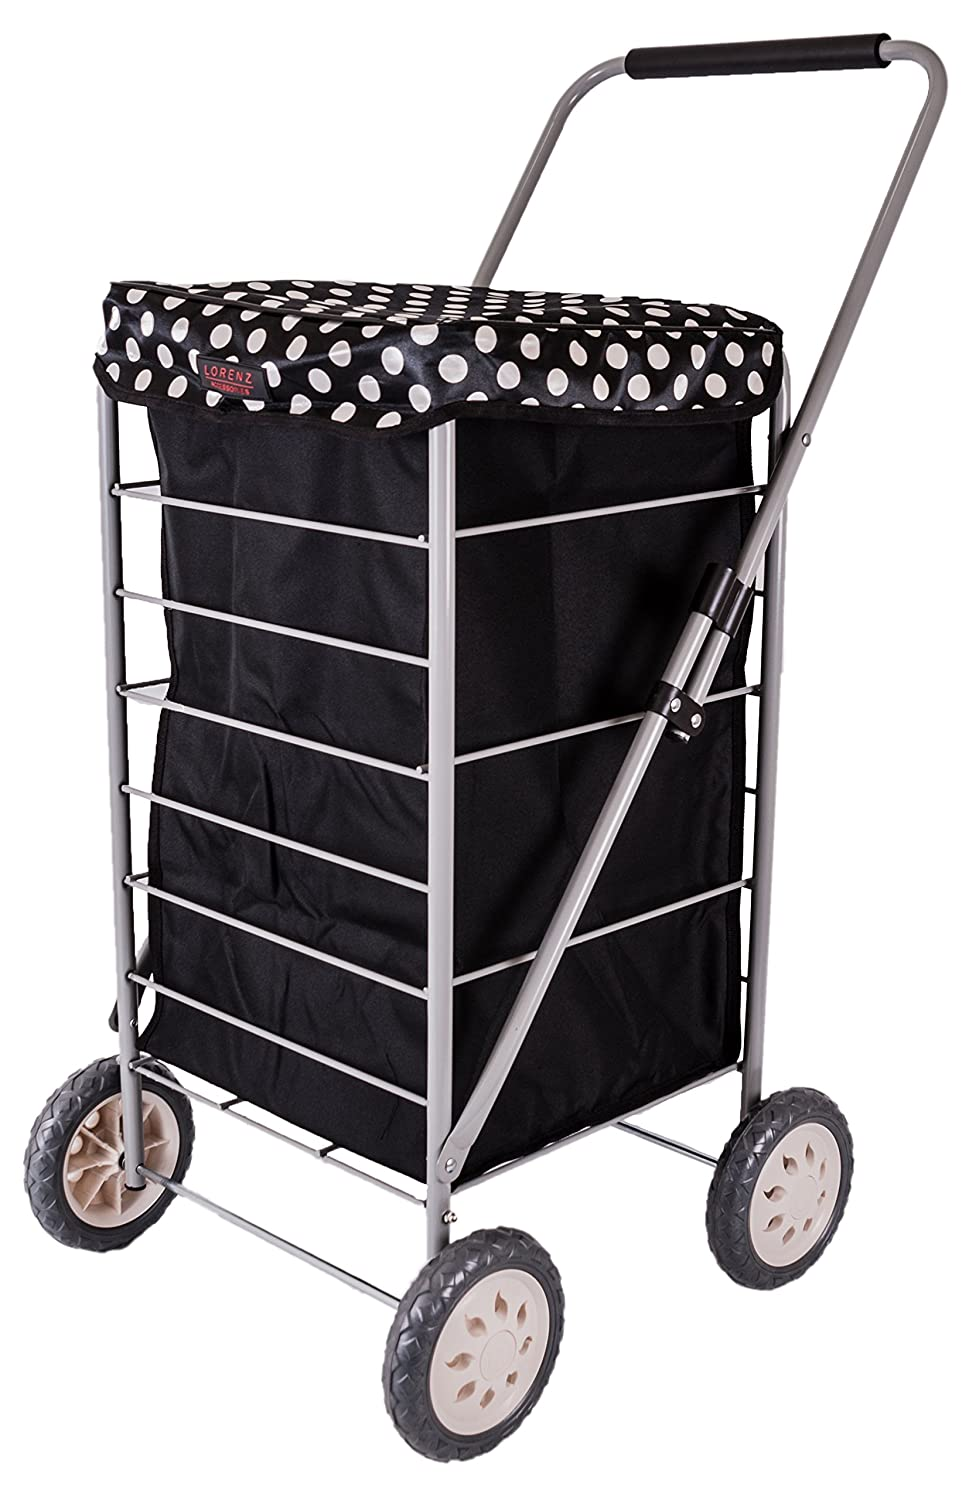 6963/W Black/White DOTS MF Four WEELS Shopping Trolley